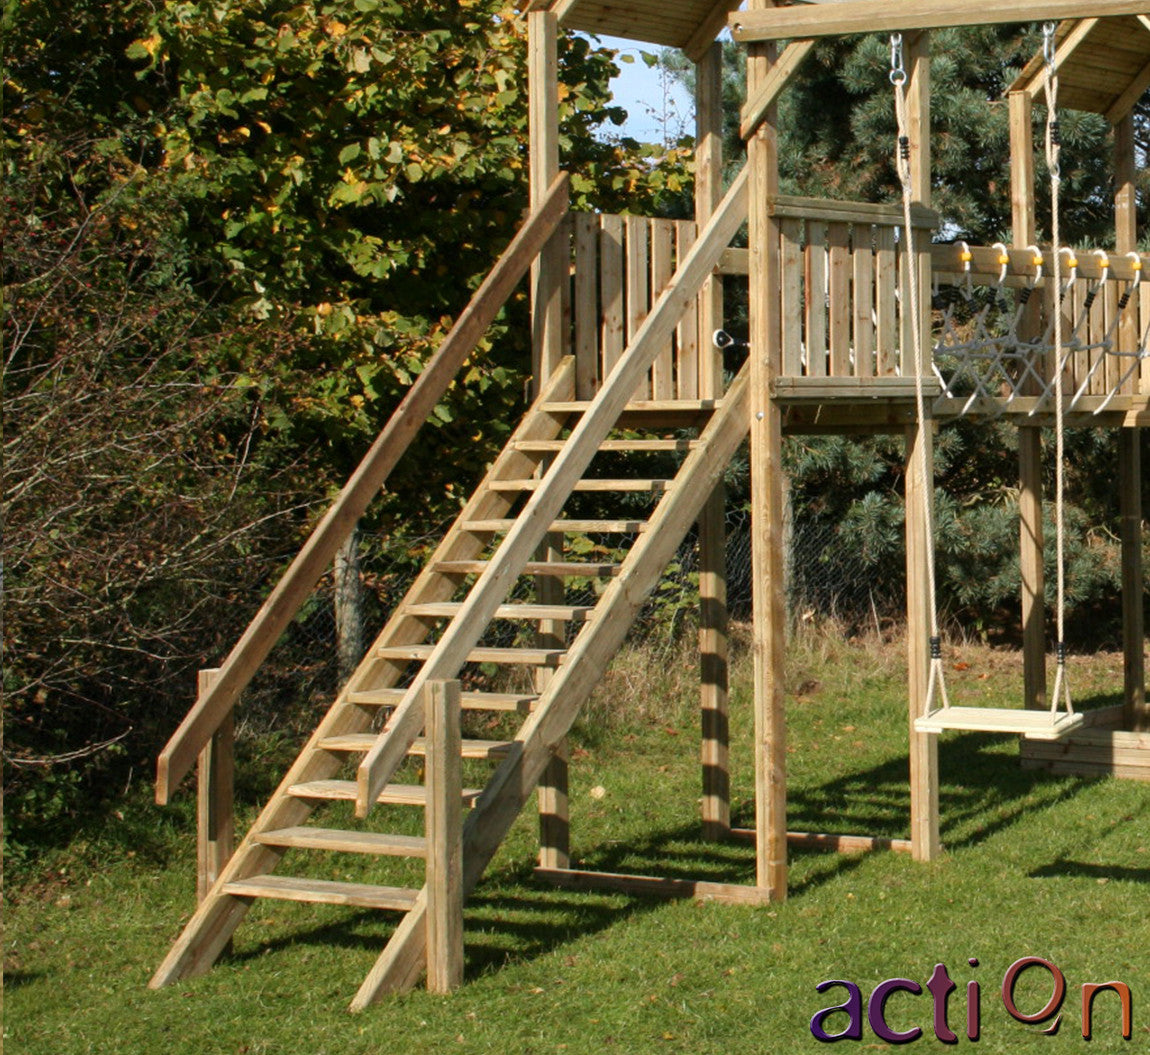 Staircase for Action Climbing Frames